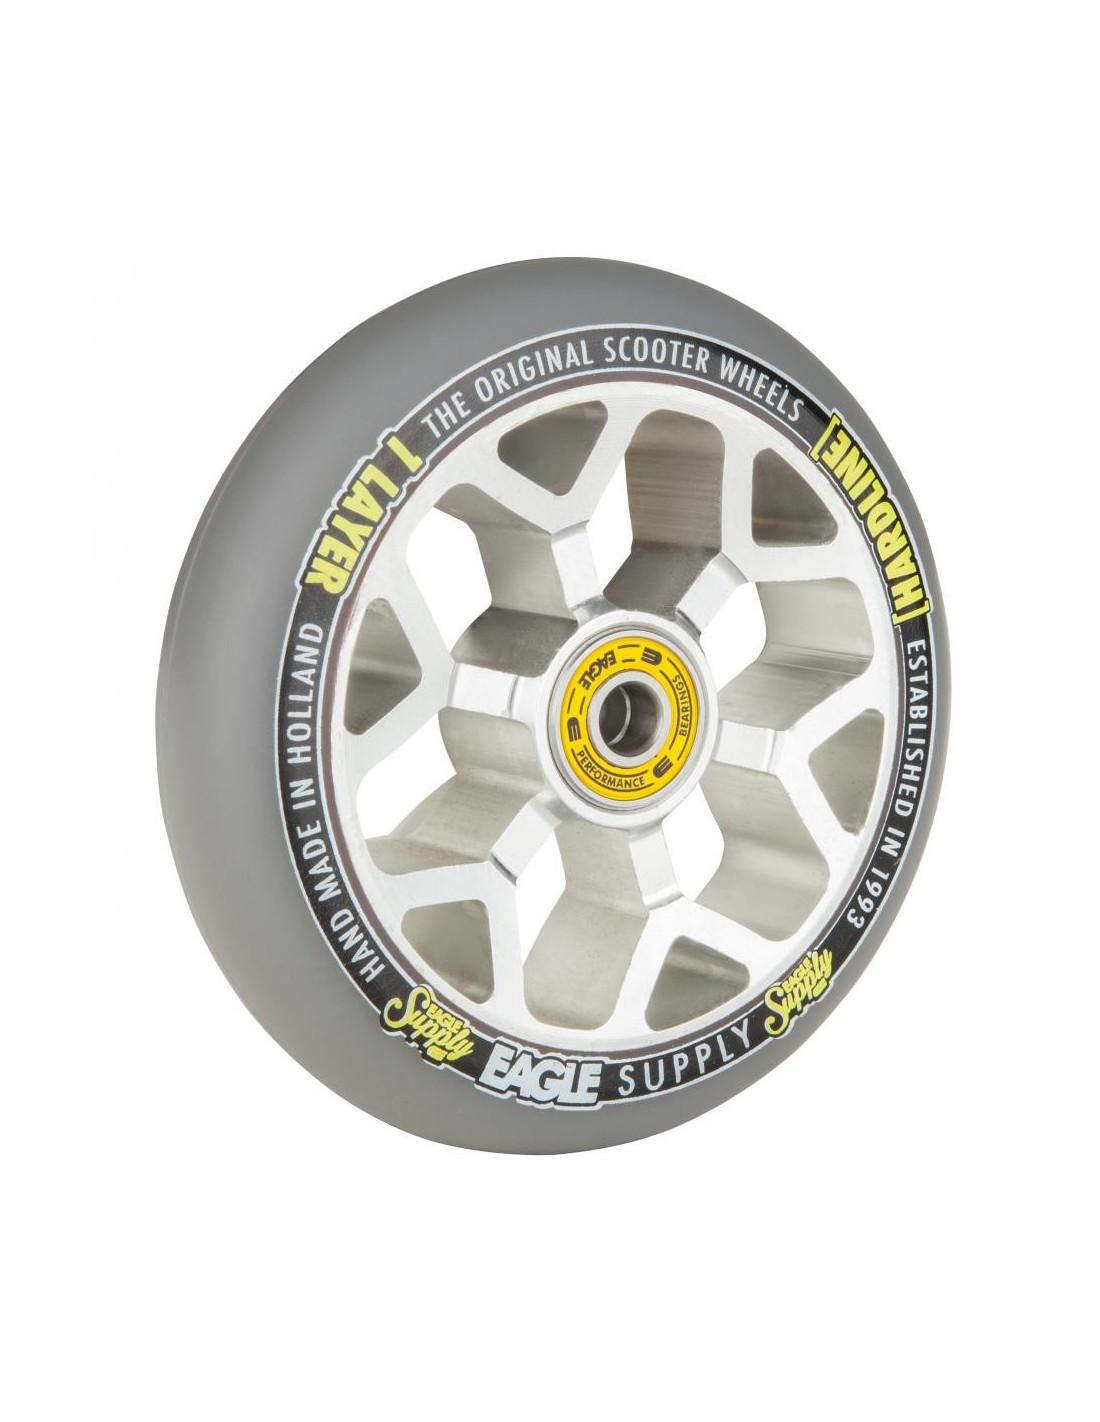 Eagle Supply Wheels: Hard line 1 Layer / 6M